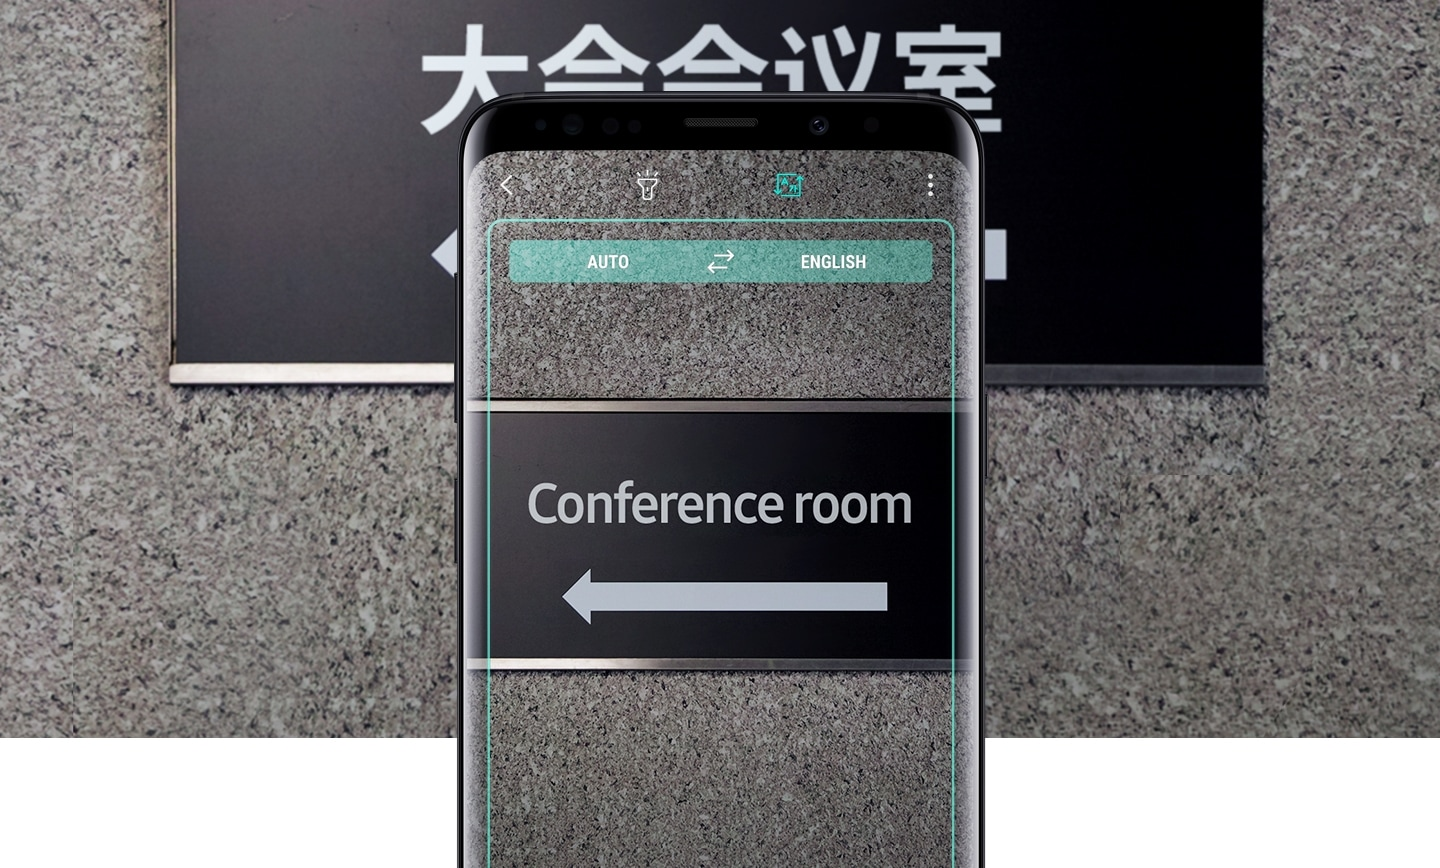 Galaxy S9 or S9+ displaying Live Translation GUI with translated sign onscreen and untranslated sign in the background